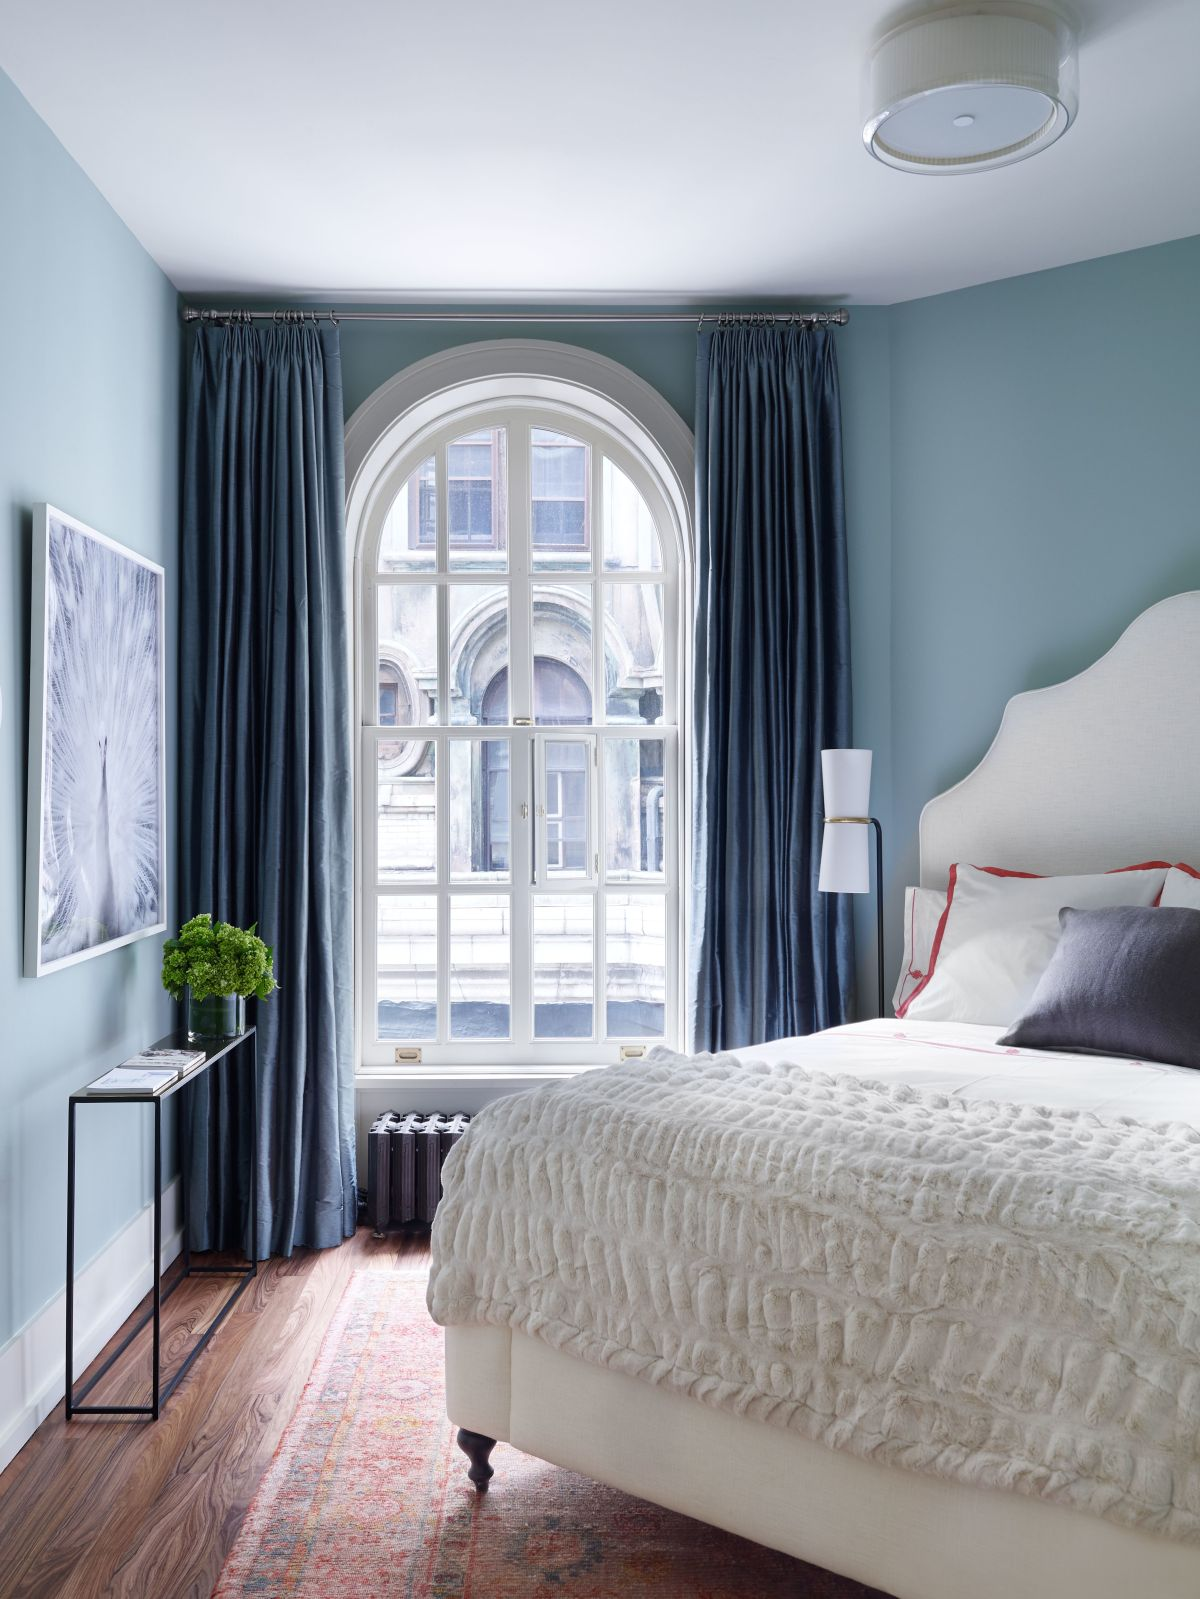 Blue Paint For Bedroom Walls Navy Blue Paint Bedroom Blue Paint ...